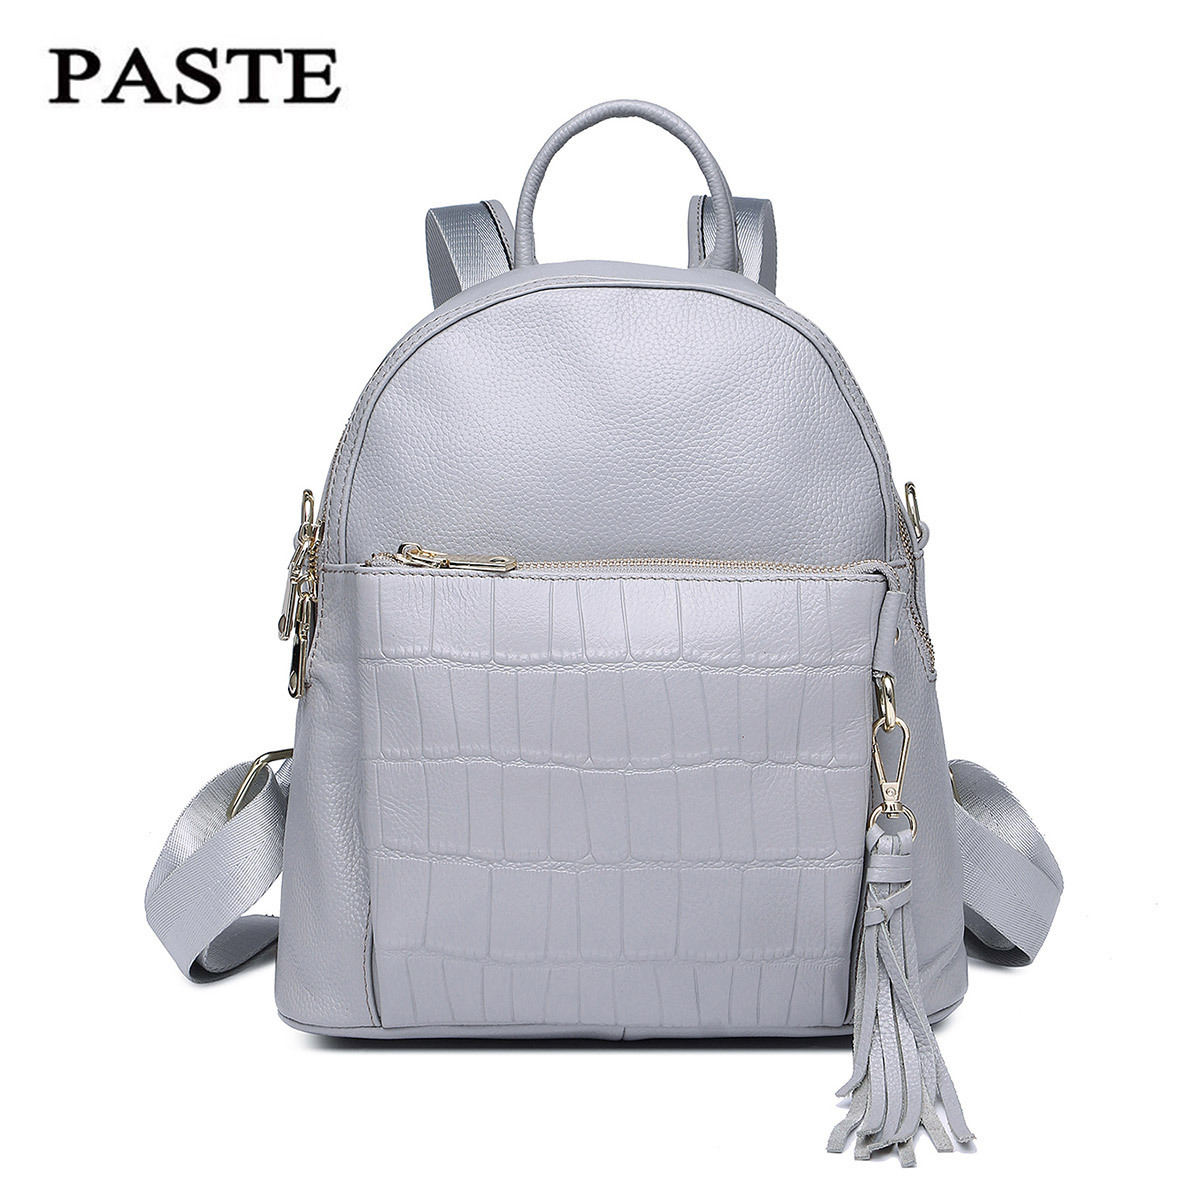 2017 Multifunction Crocodile Pattern Leather Women Backpack Leisure Daul use Shoulder Bag Preppy School Bag Cowhide